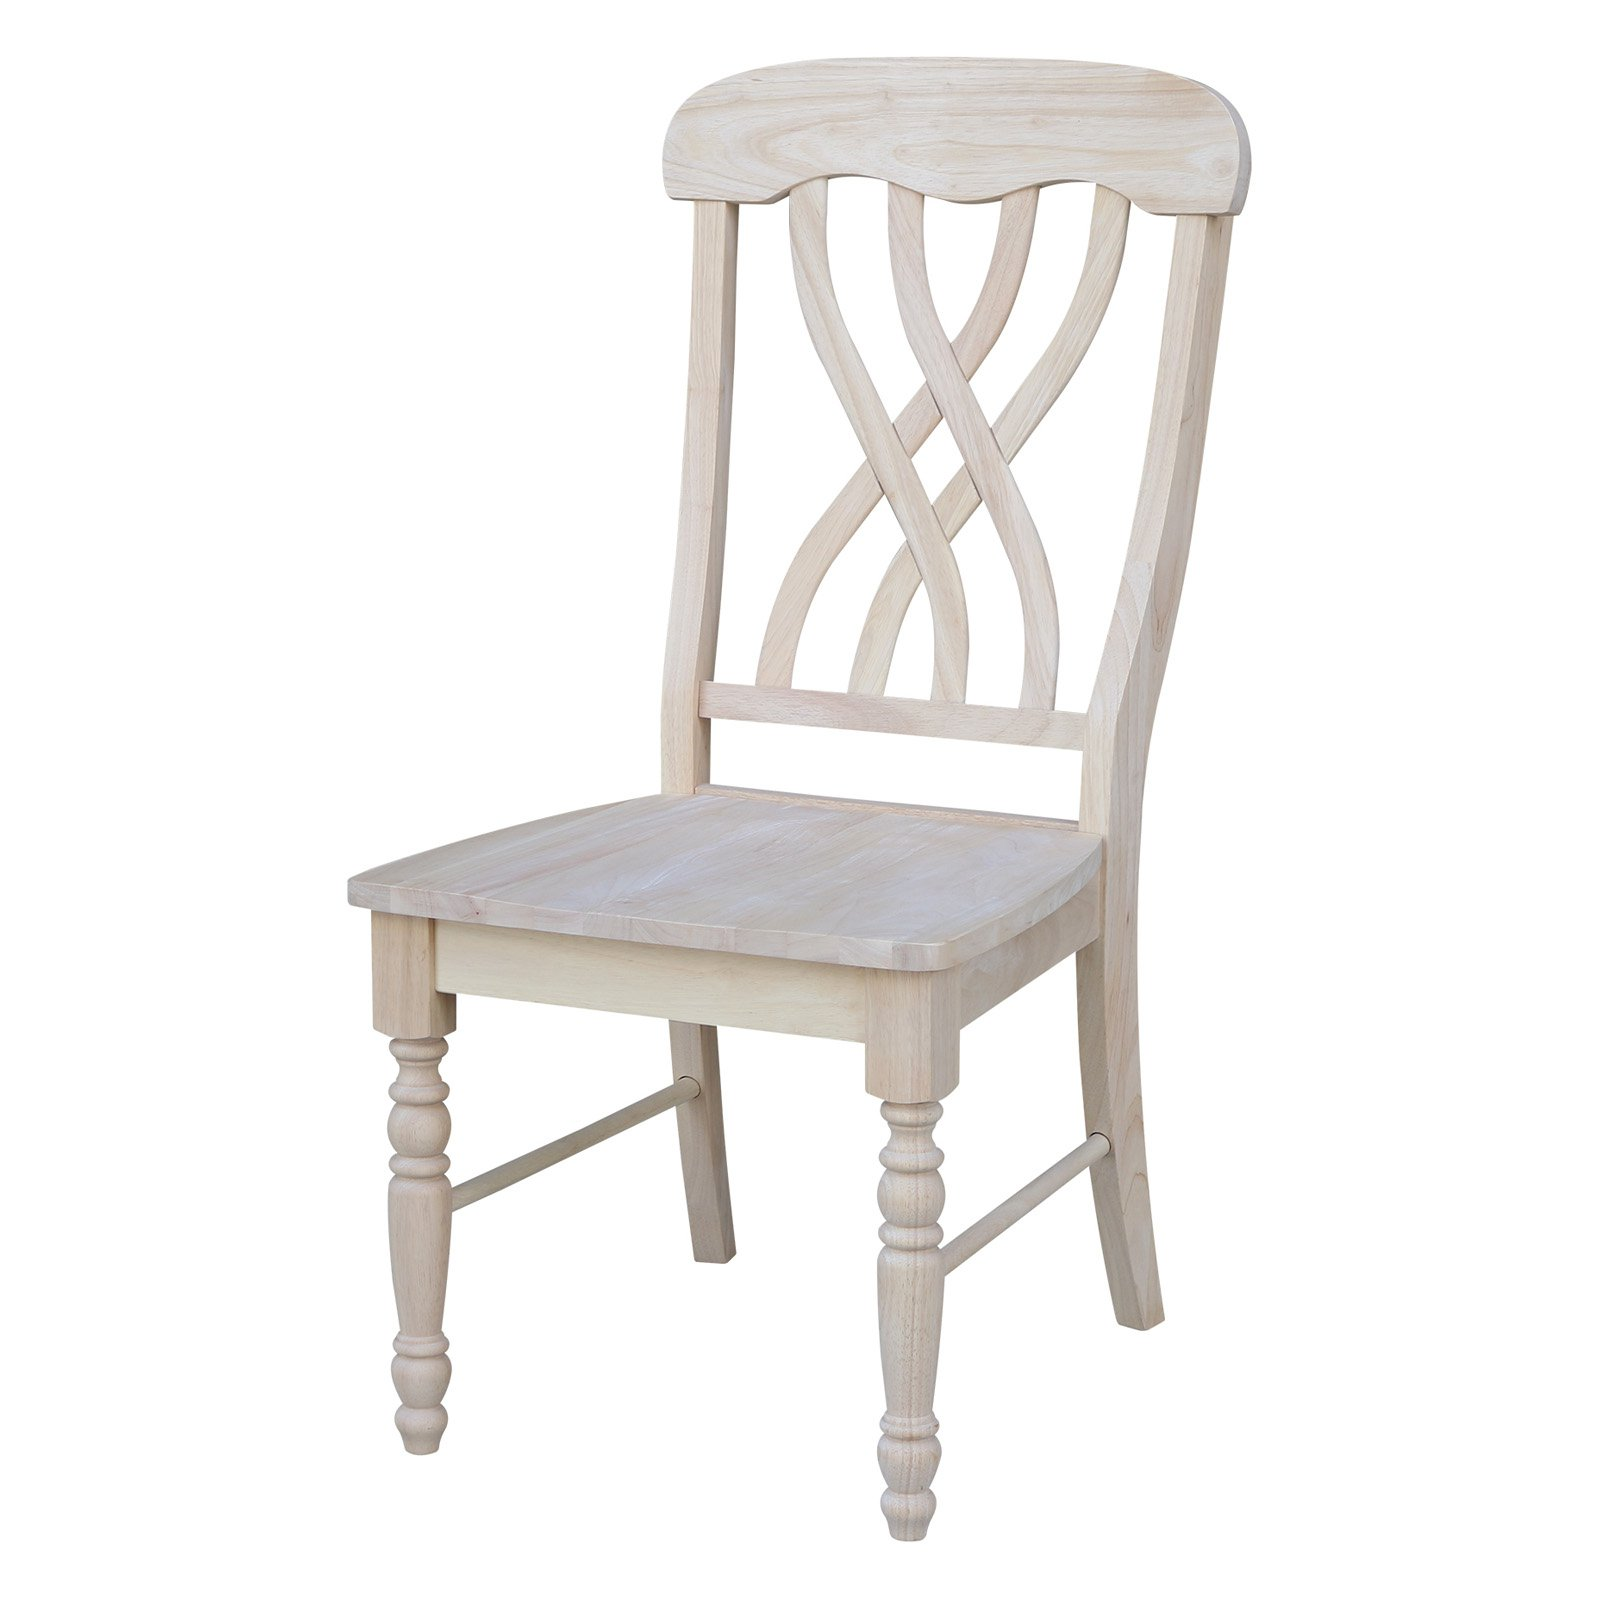 Merveilleux International Concepts Unfinished Lattice Side Dining Chairs   Set Of 2    Walmart.com